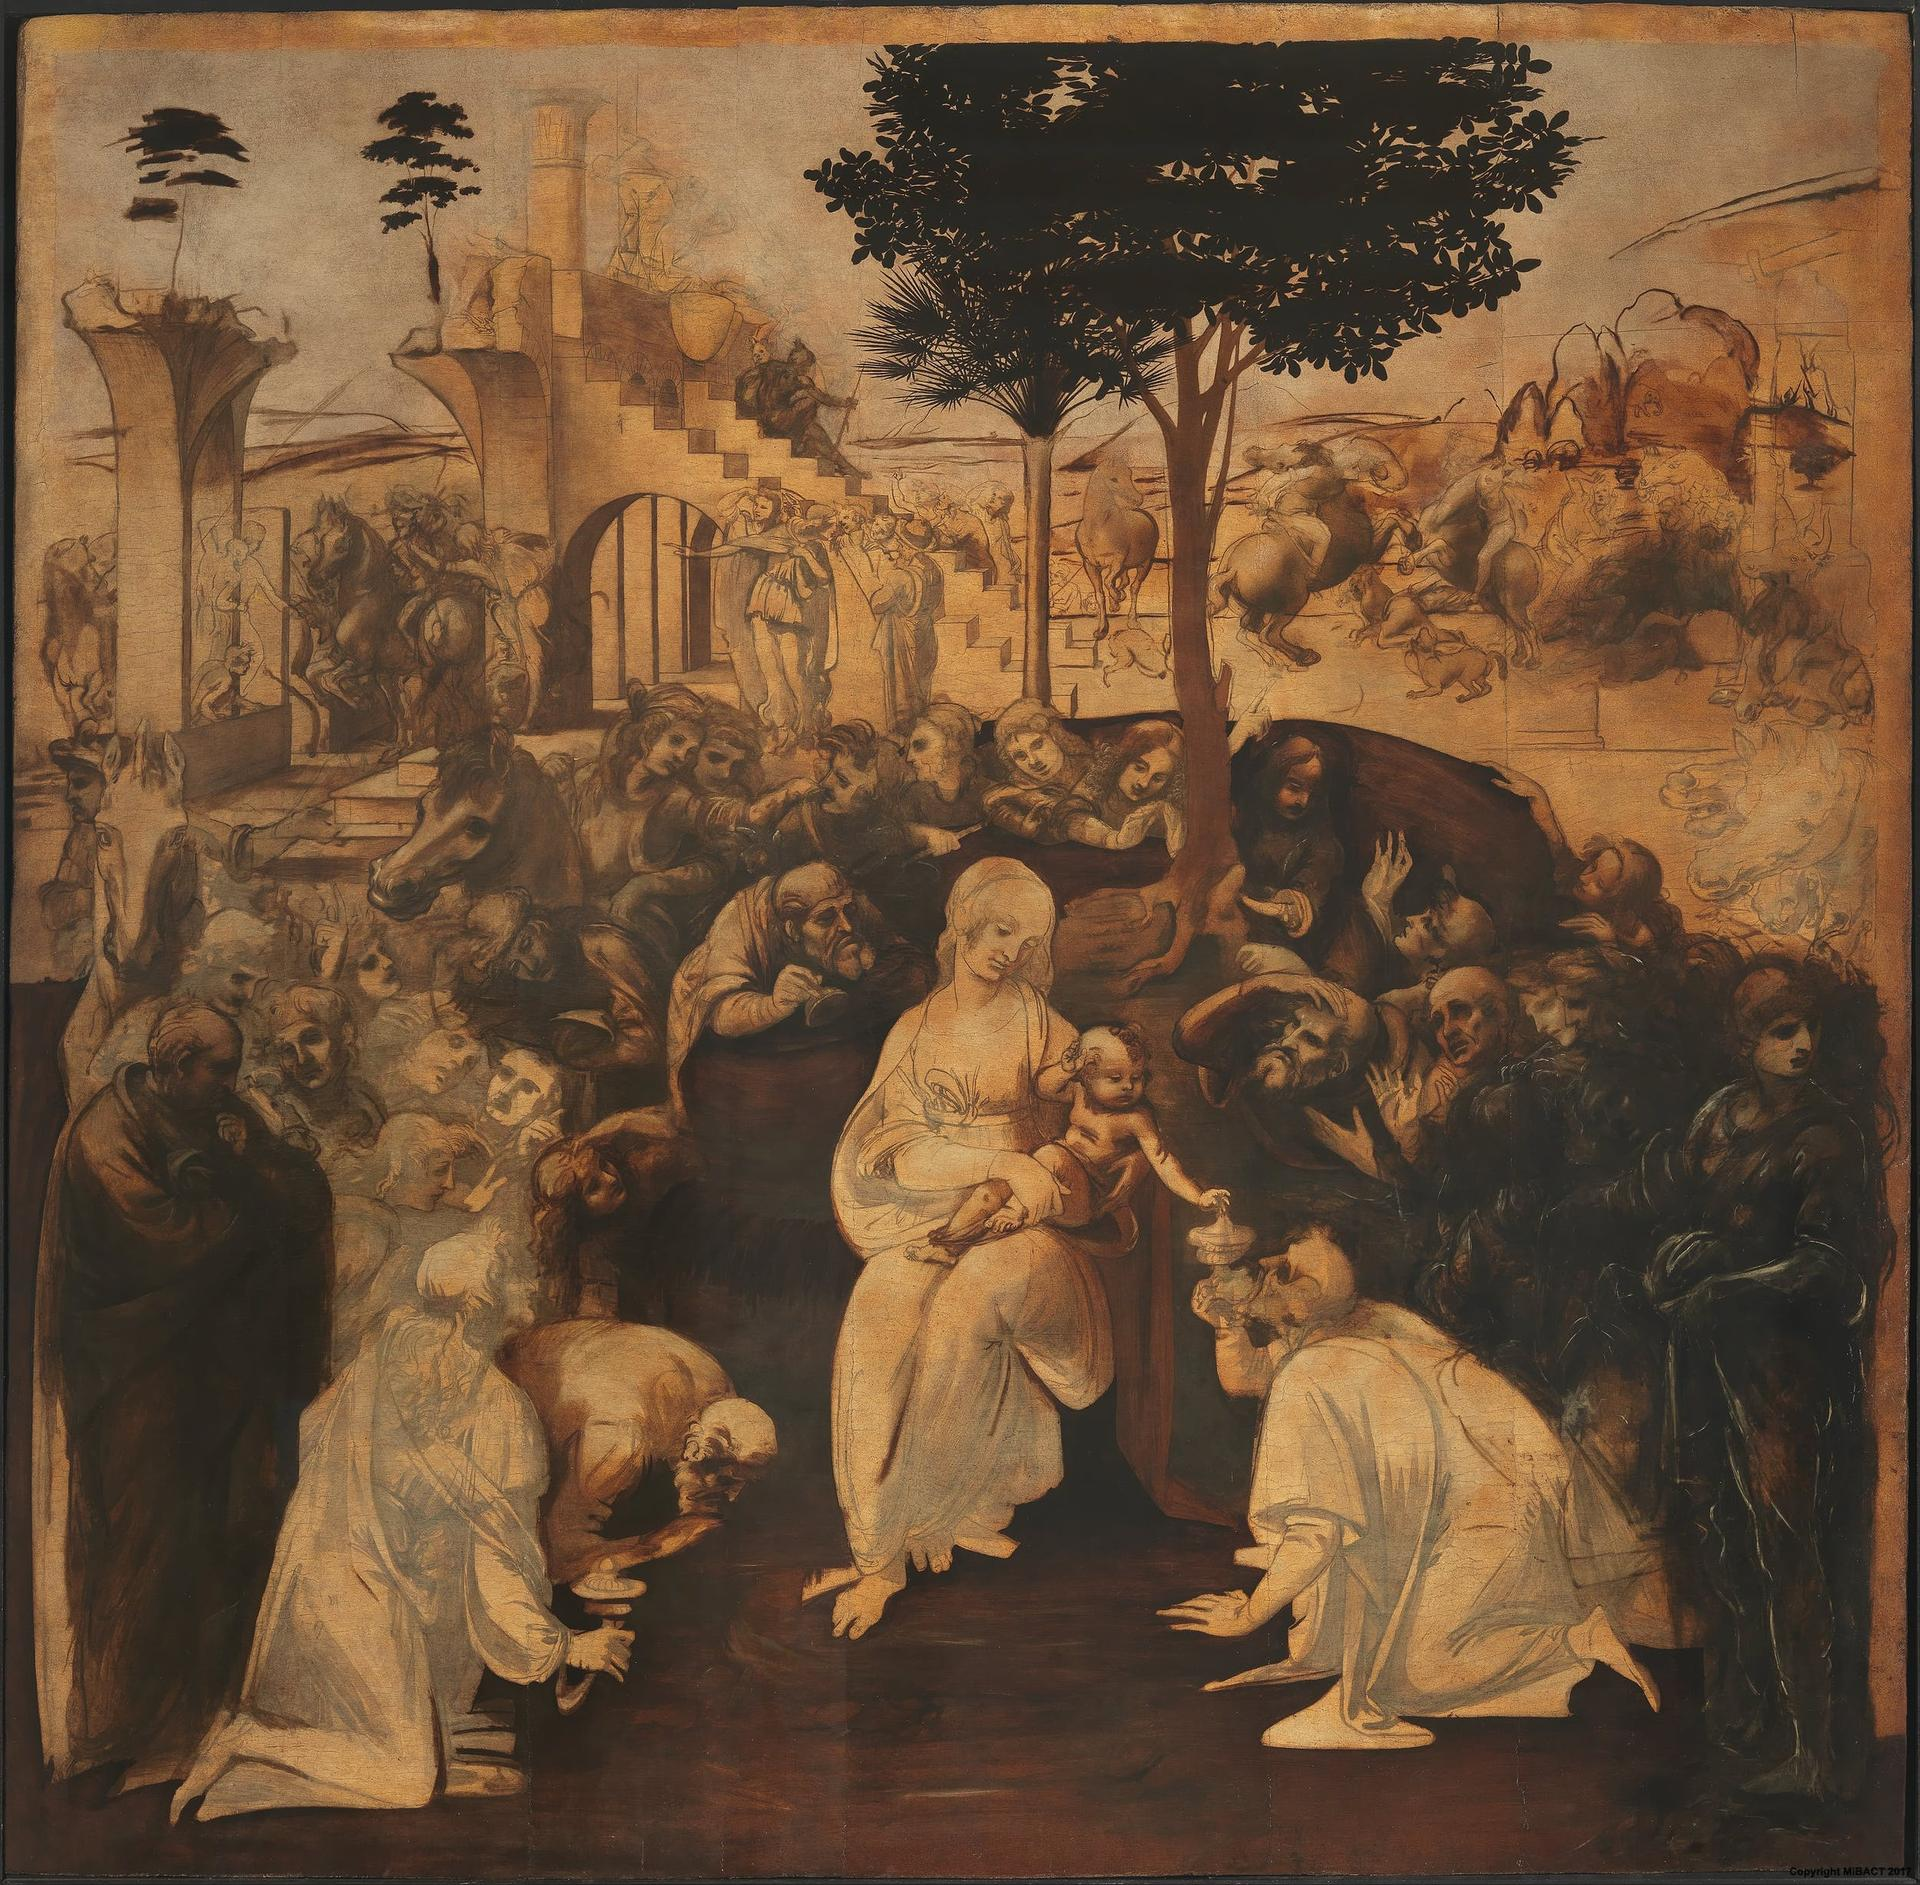 Adoration of the Magi by Leonardo